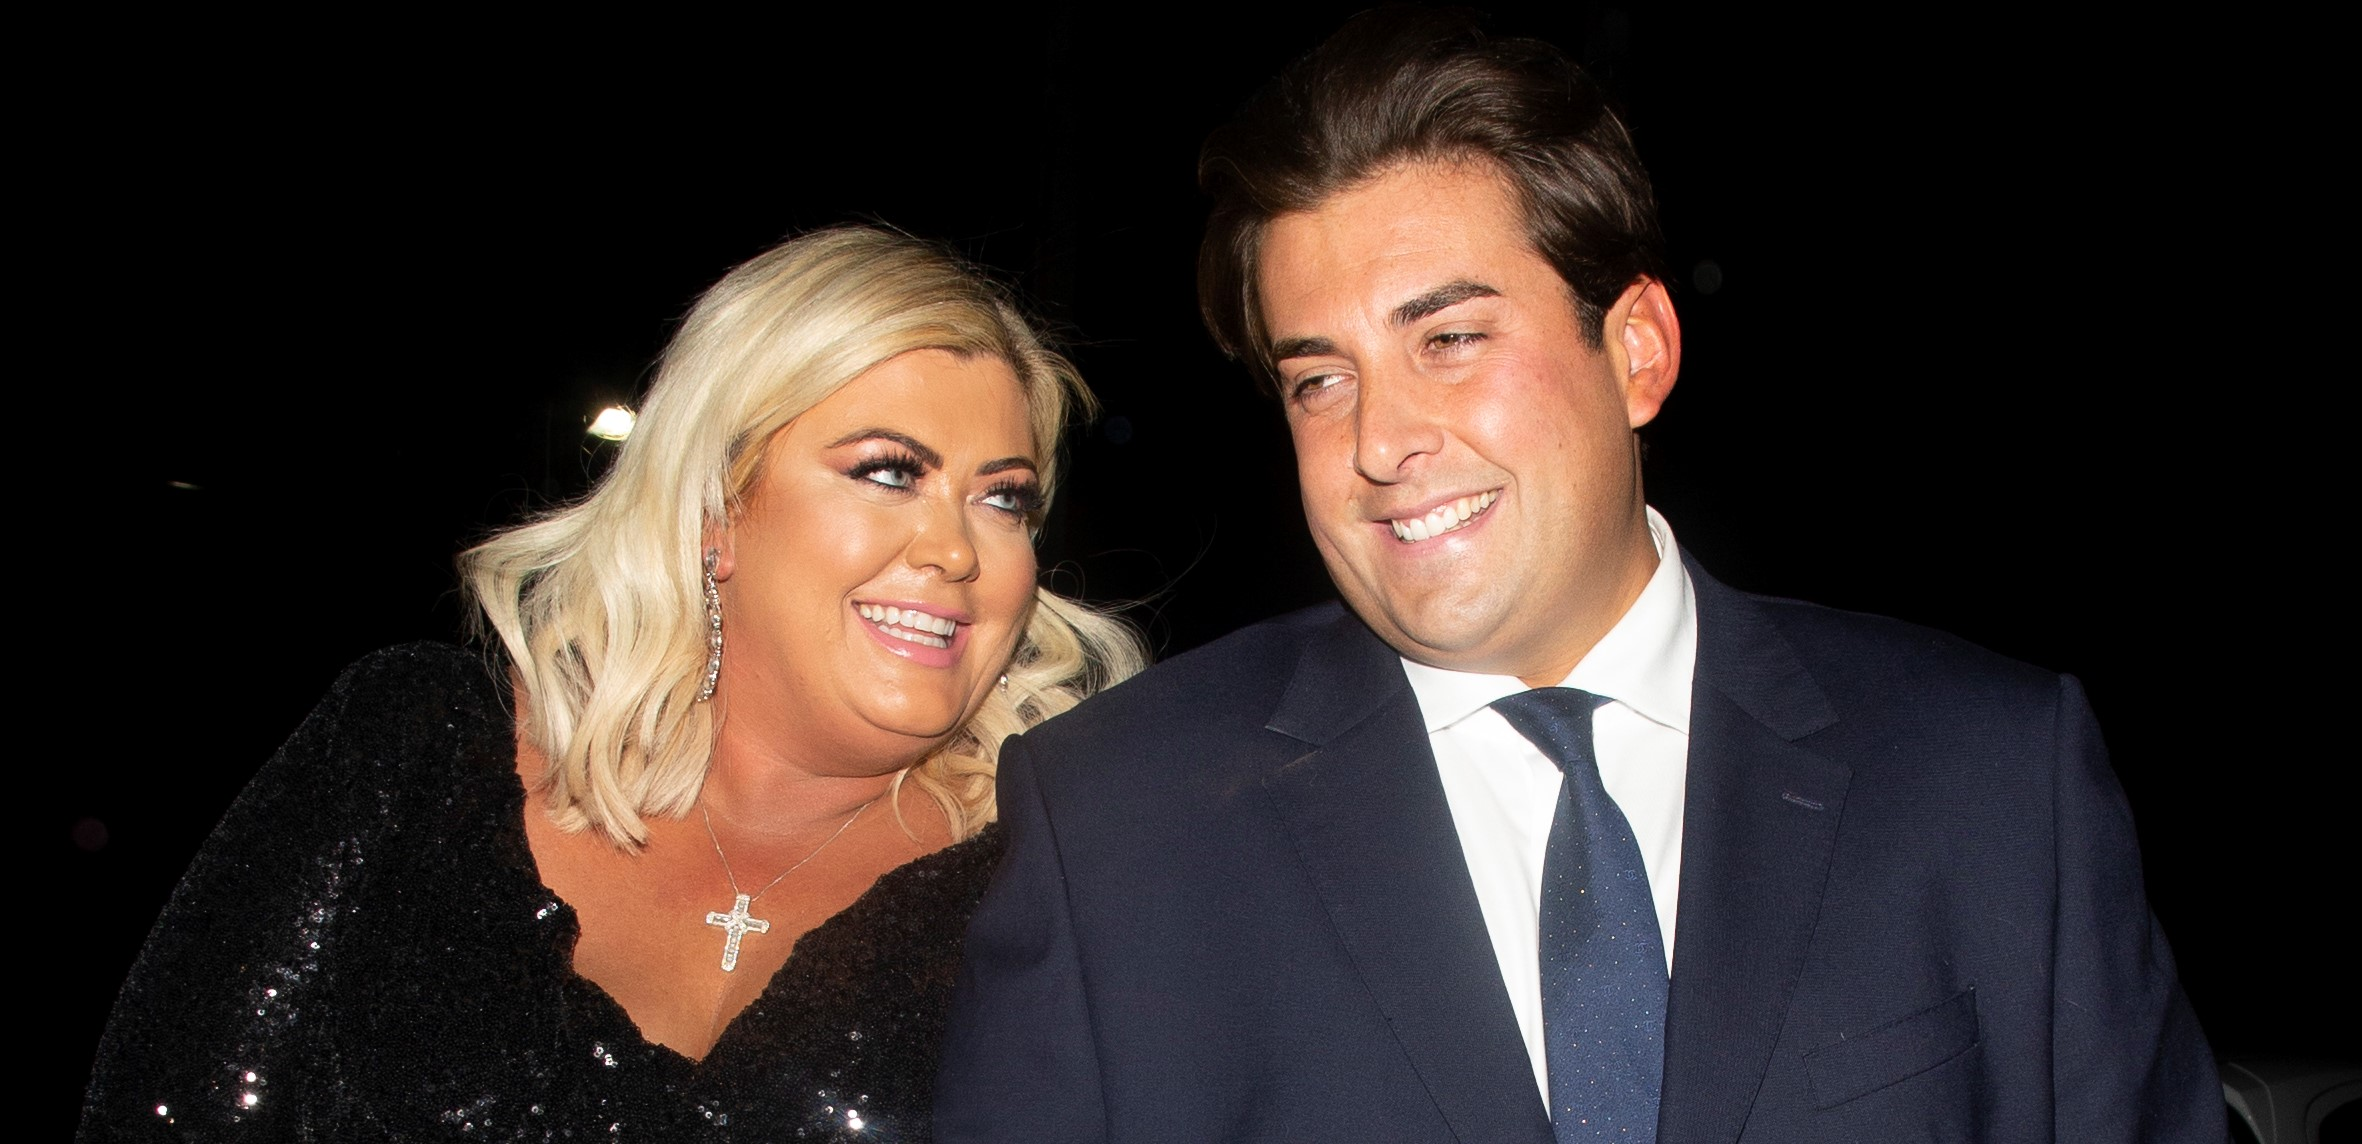 Gemma Collins reveals she's ready for marriage and babies with James Argent